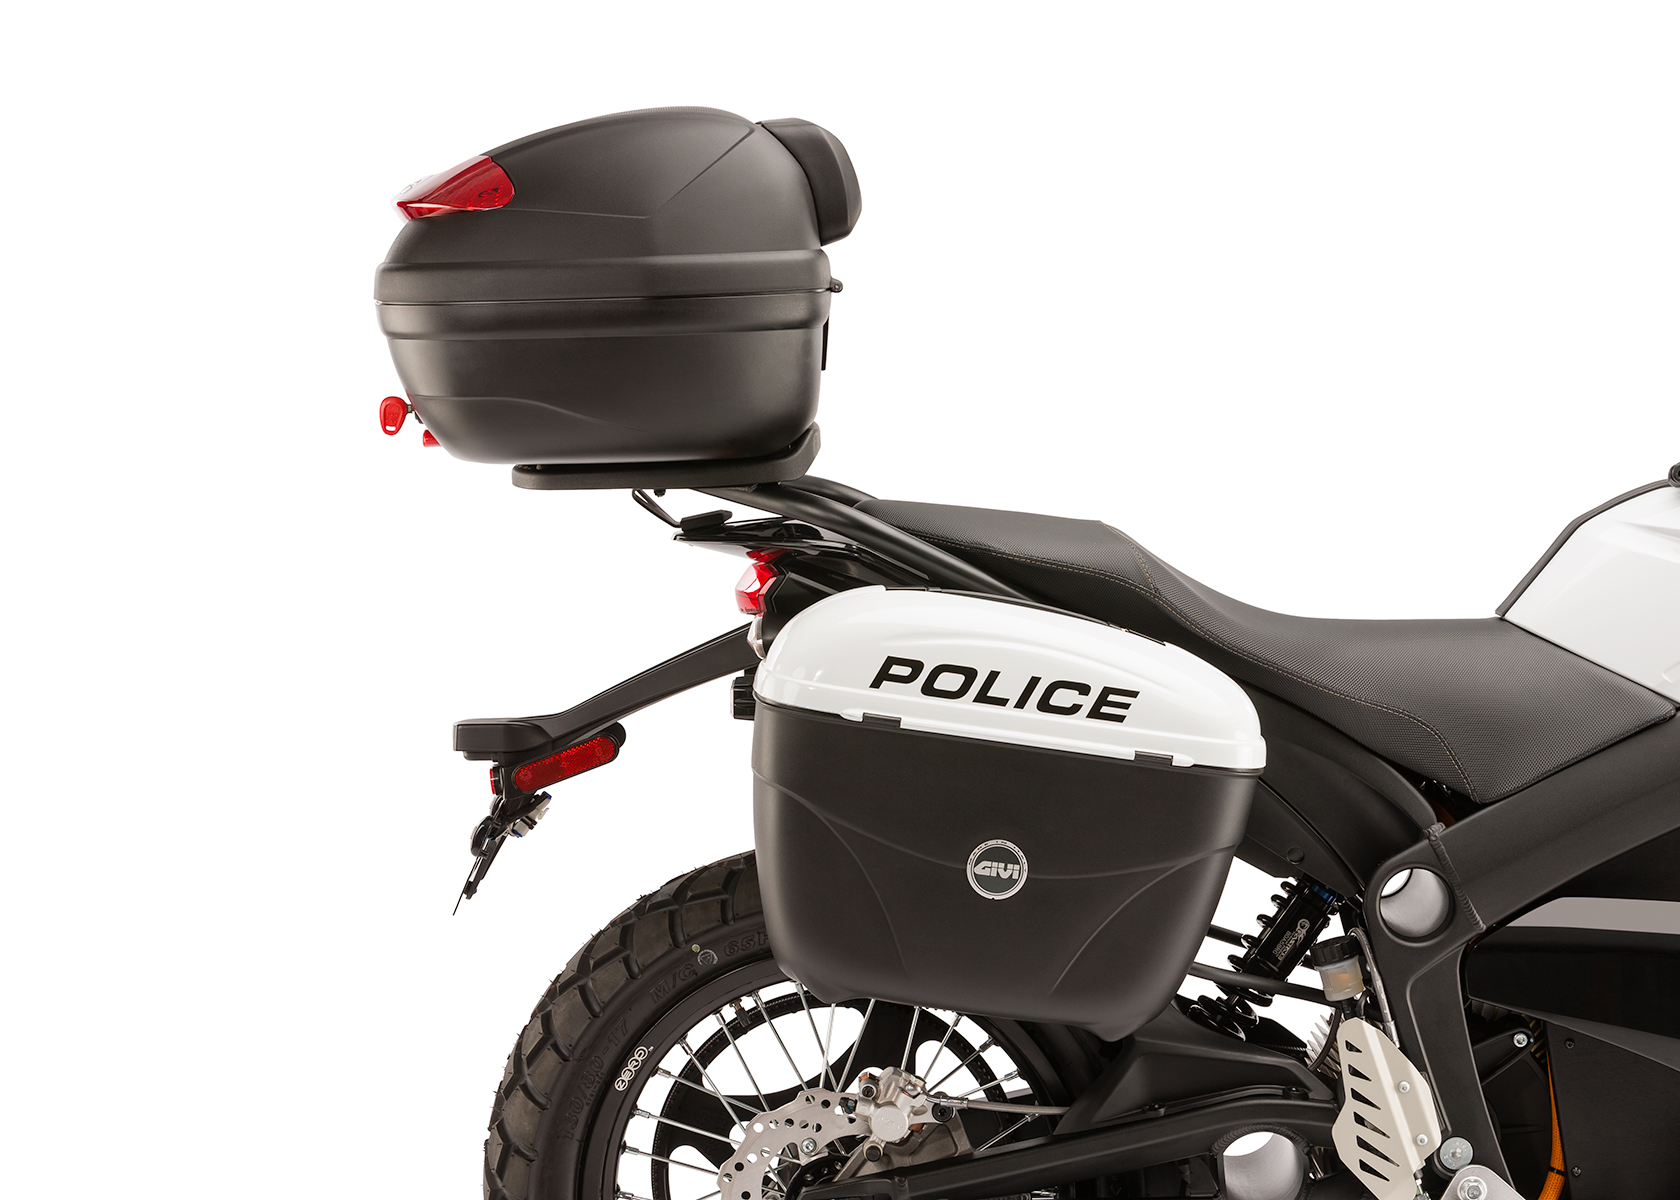 2013 Zero Police Electric Motorcycle: Right profile, Rear, Saddle bag and top box